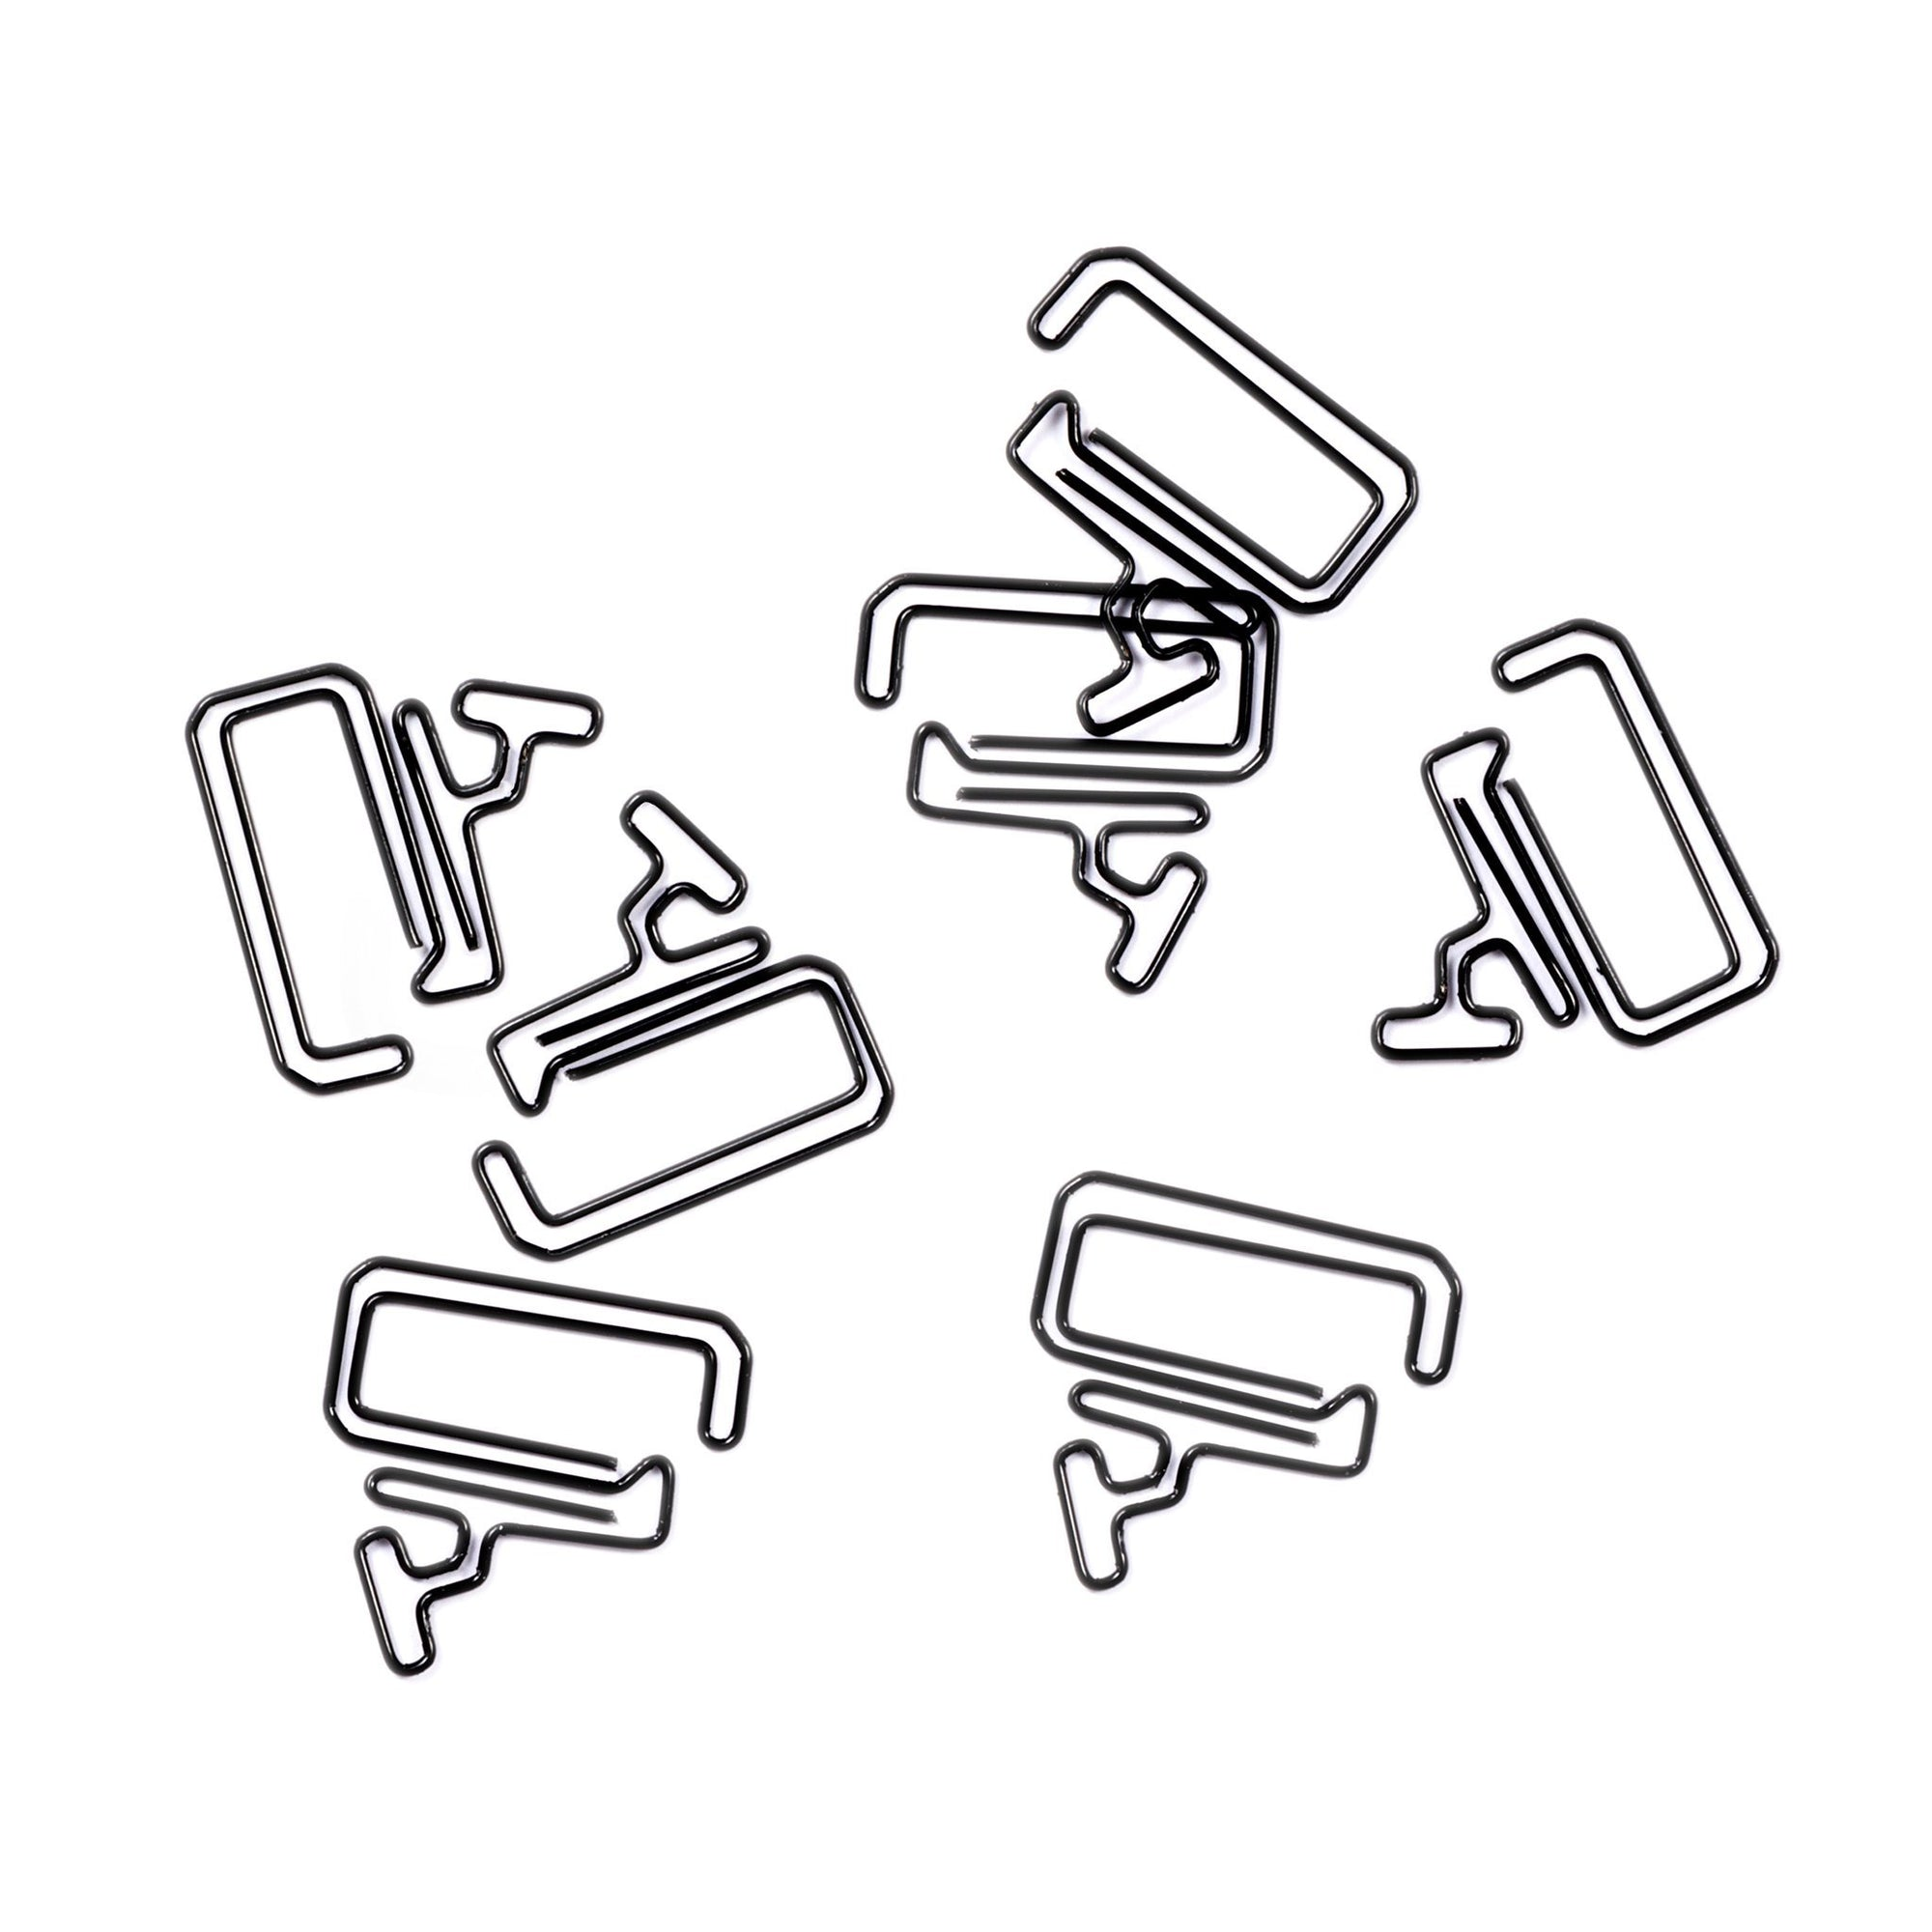 SPYSCAPE Surveillance Camera Paper Clips